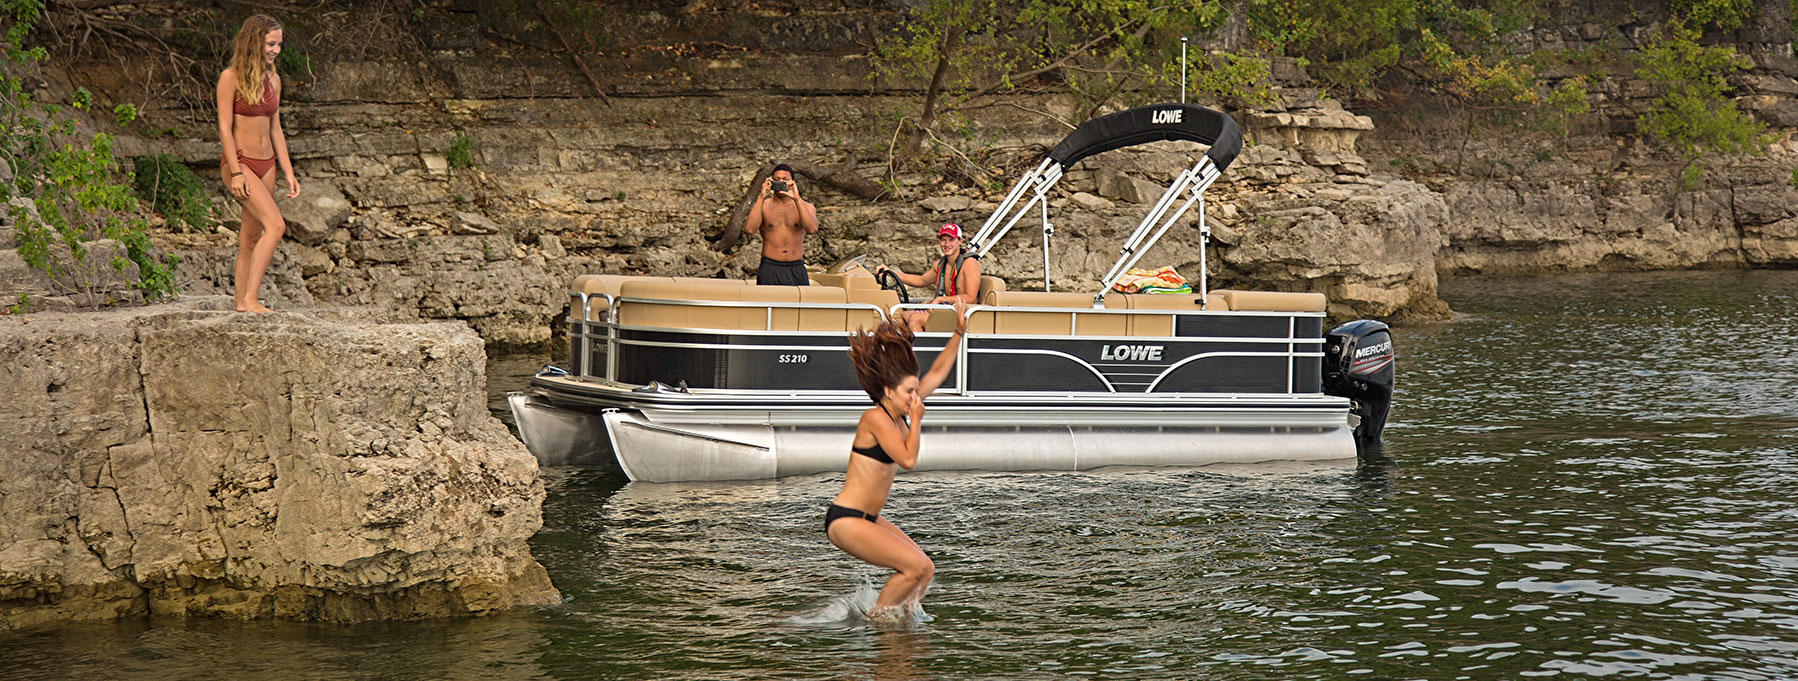 2019 Ss210 Sport Pontoon Boat Lowe Pontoons Station Wiring Diagram For Two